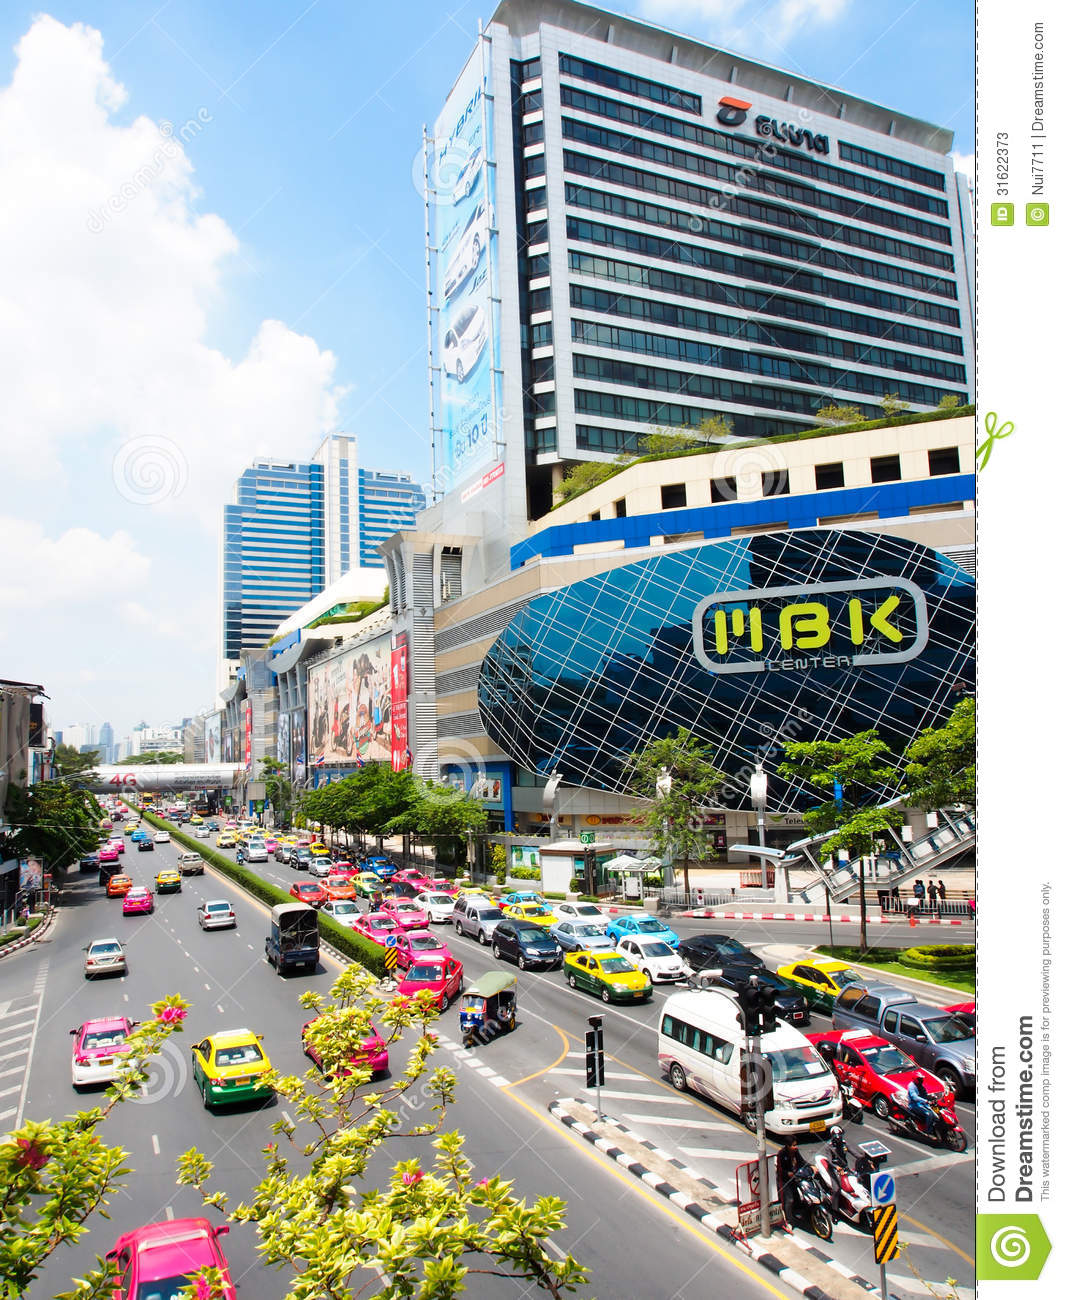 thai governments first car scheme Housing glut reflects thai doldrums the market is overbuilt but few think thailand will see a repeat of the speculation-driven 1997-98 collapse by peter janssen chonburi, january 23, 2018 4:14 pm (utc+8).